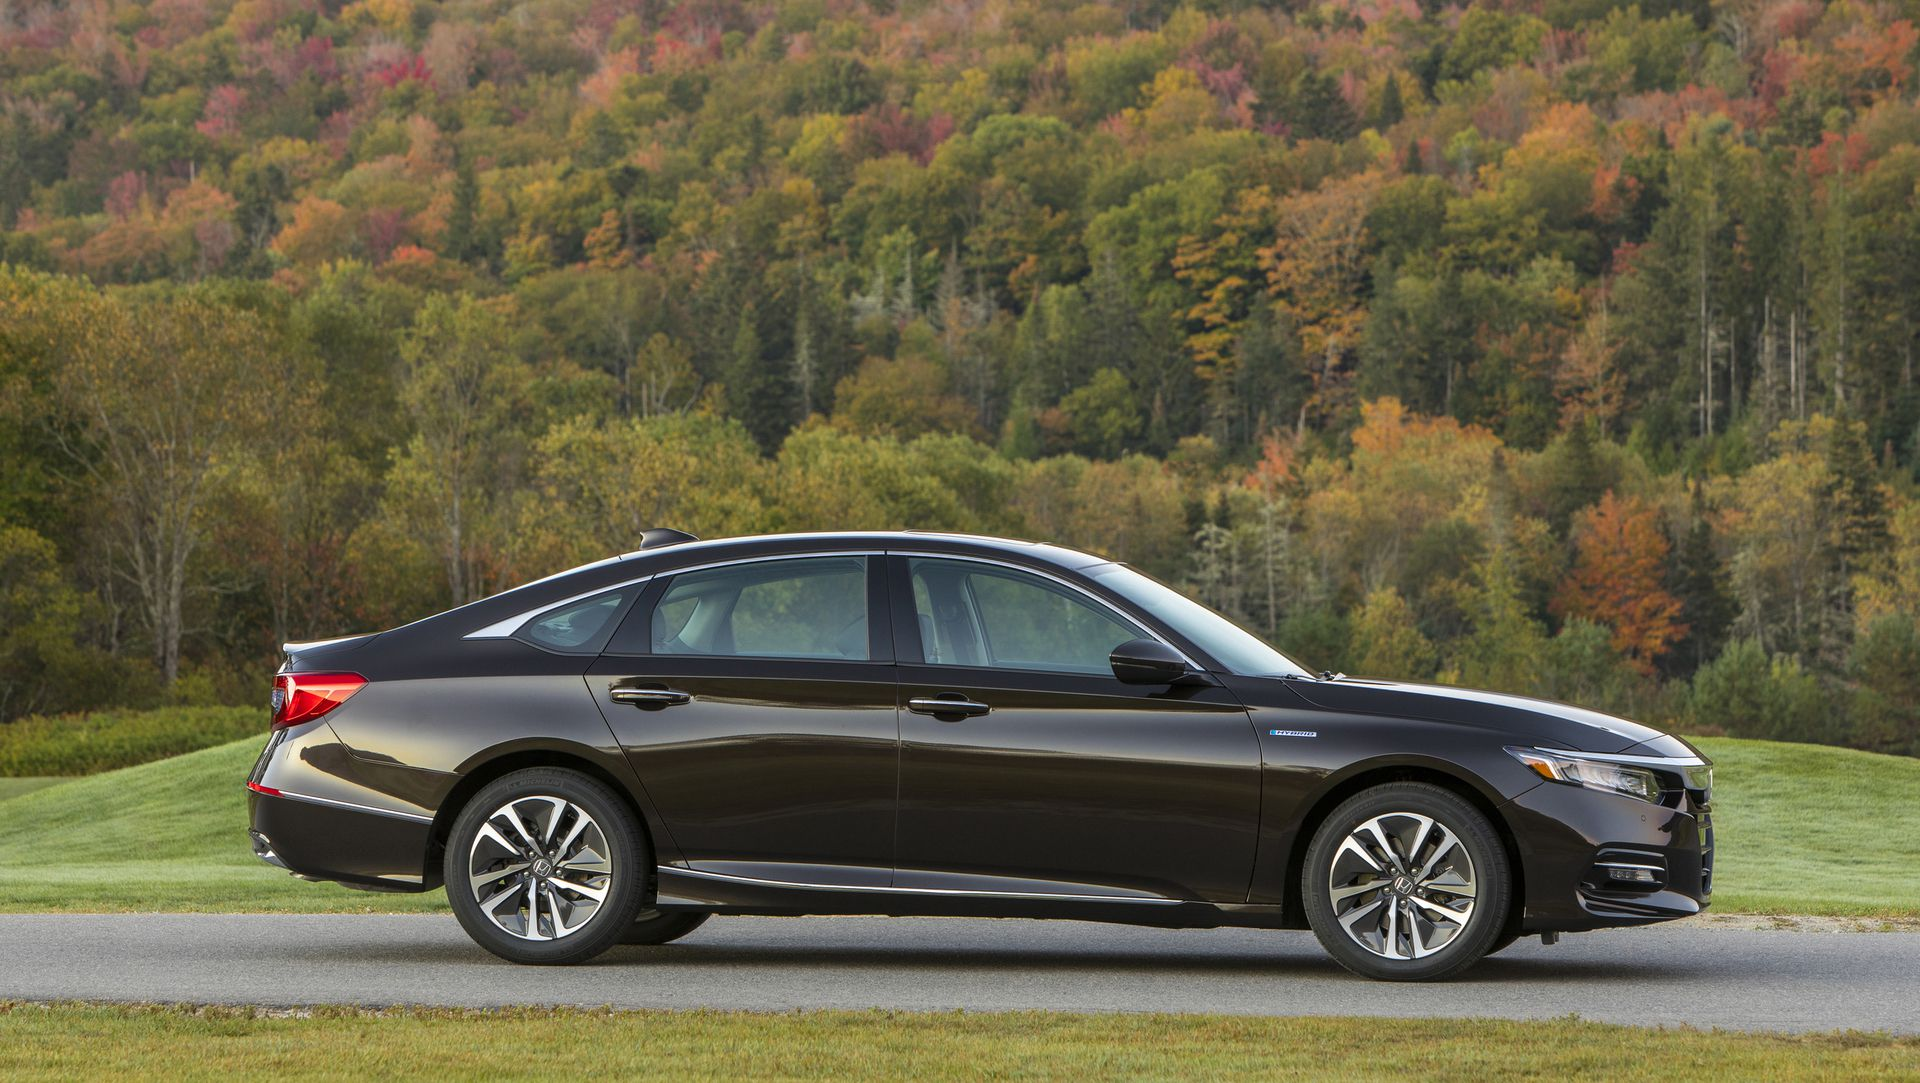 2018 honda accord hybrid fuel economy revealed slightly for Honda accord old model